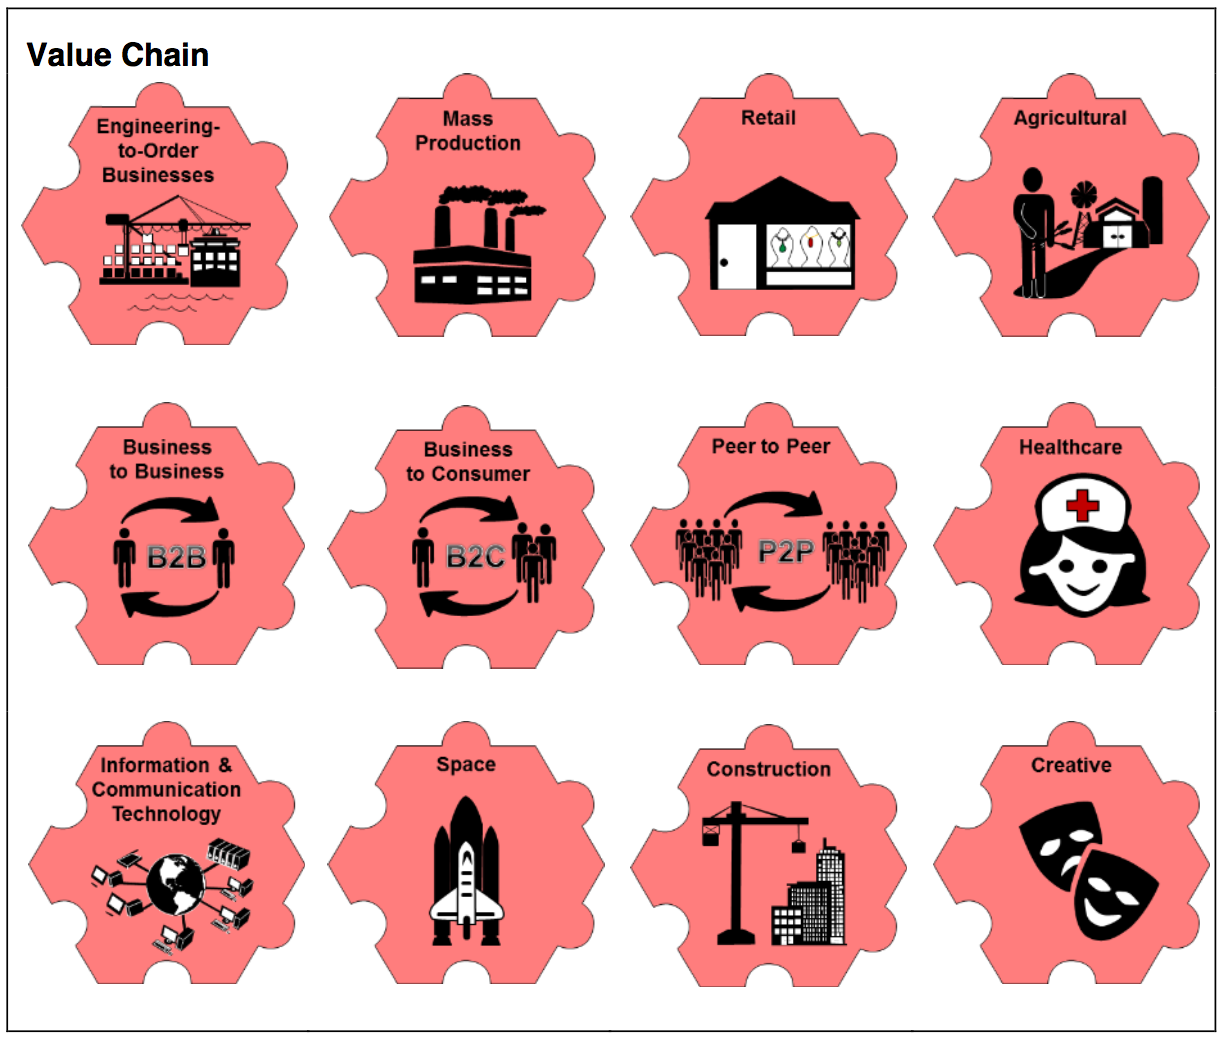 Game pieces in the system for 'Value Chain': Engineering-to-Order Business, Mass Production, Retail, Agricultural, Business to Business, Business to Consumer, Peer to Peer, Healthcare, Information & Communications Technology, Space, Construction, Creative.